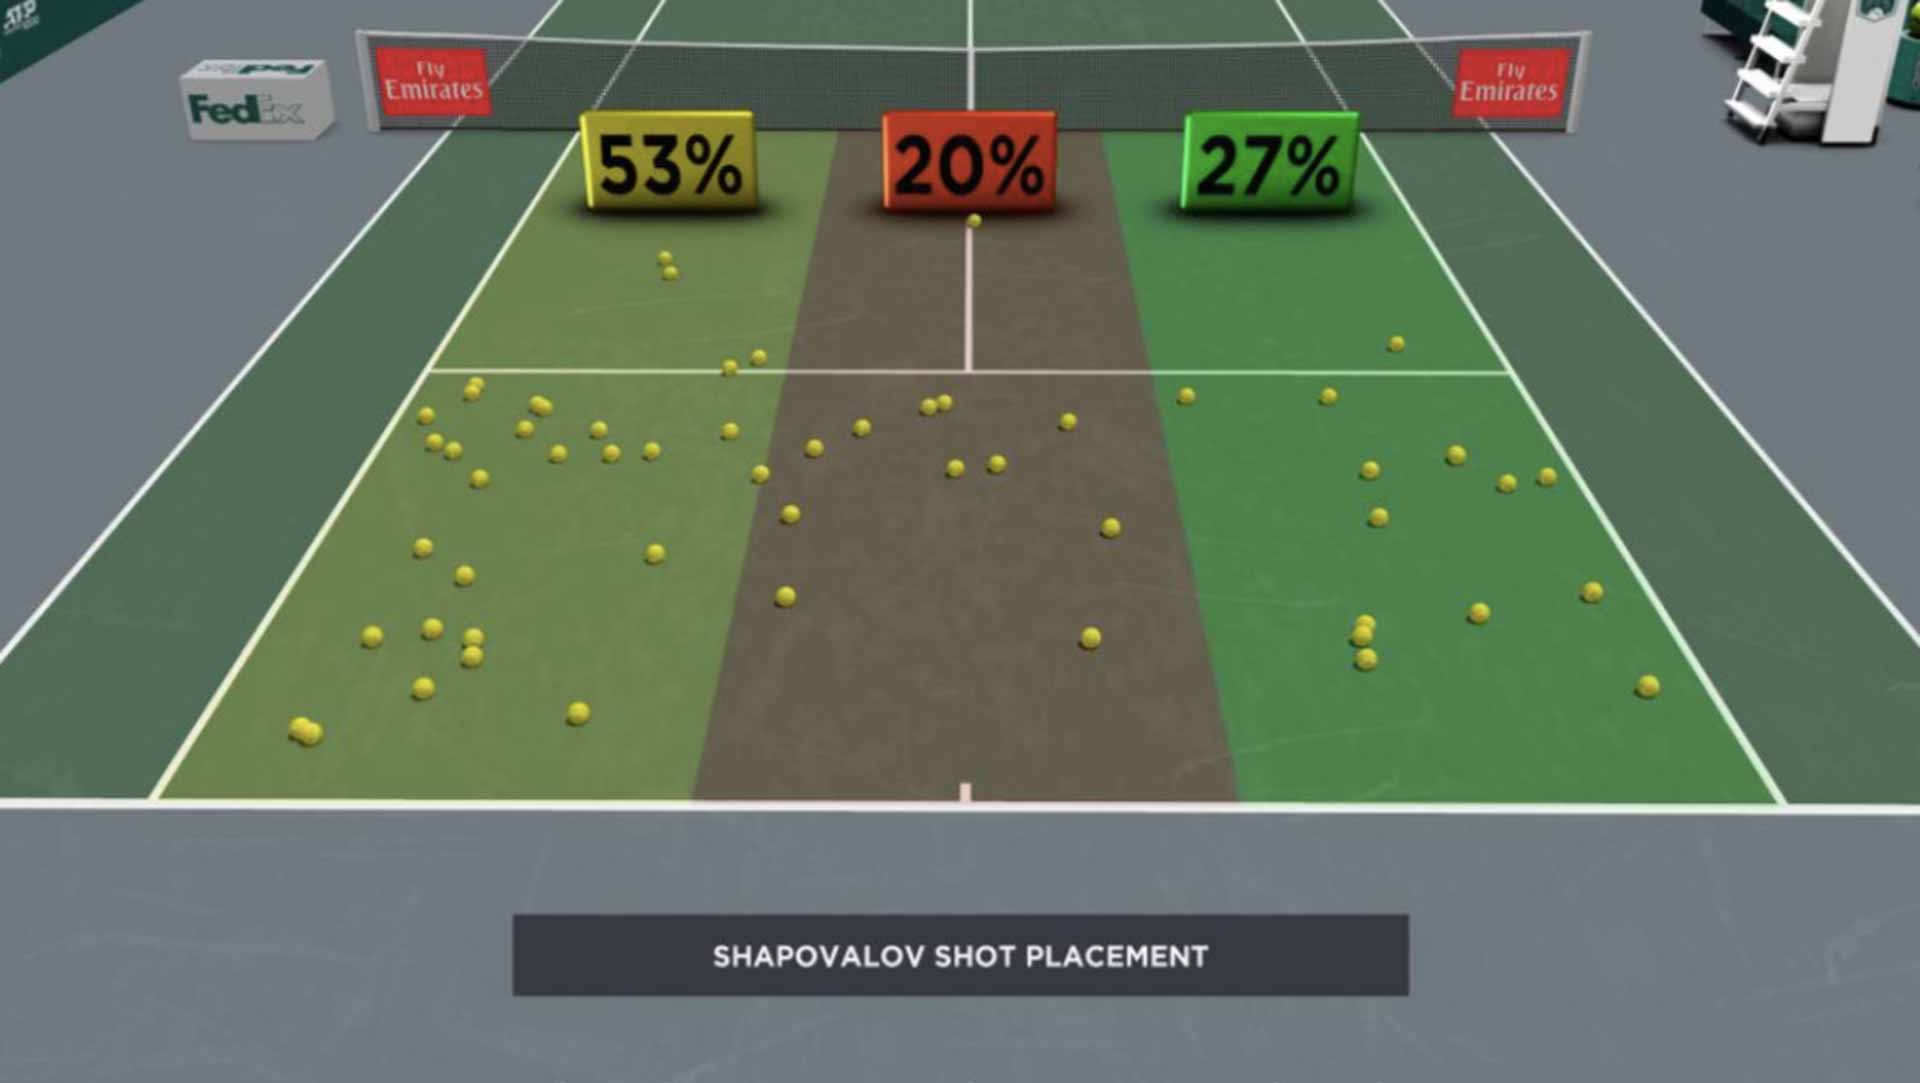 Shapovalov Shot Placement